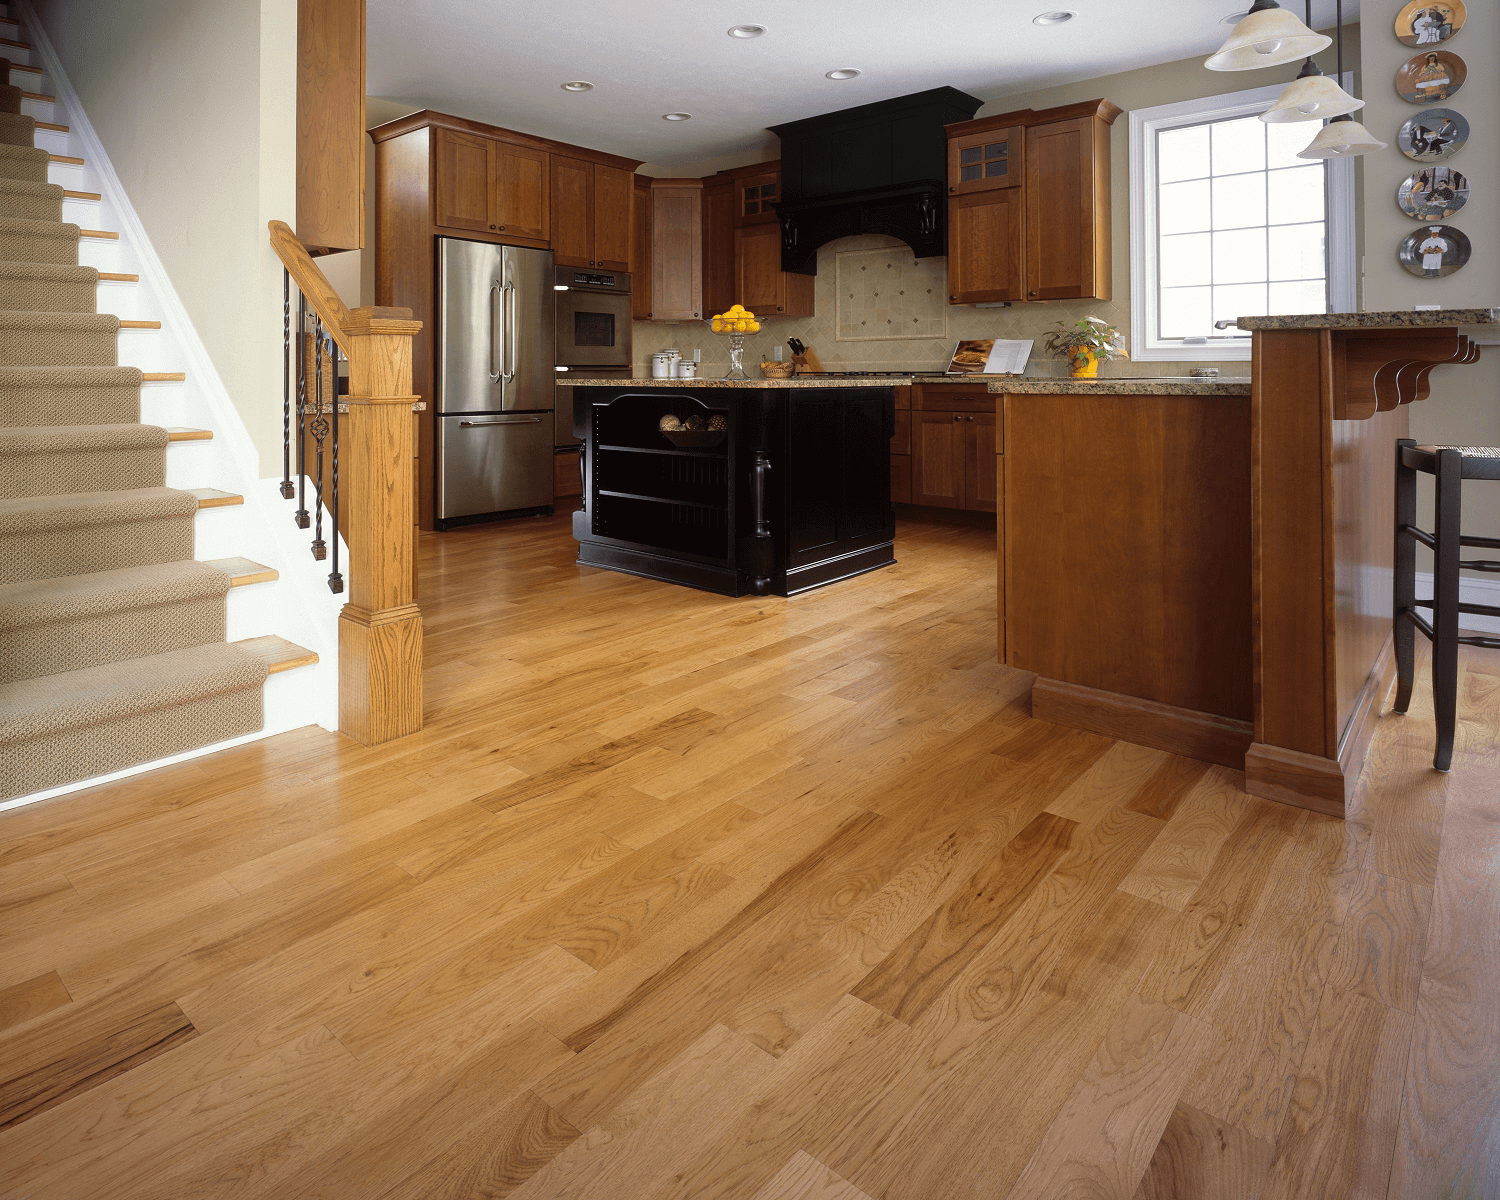 Kitchen wood floor varnishing for make good design appearance